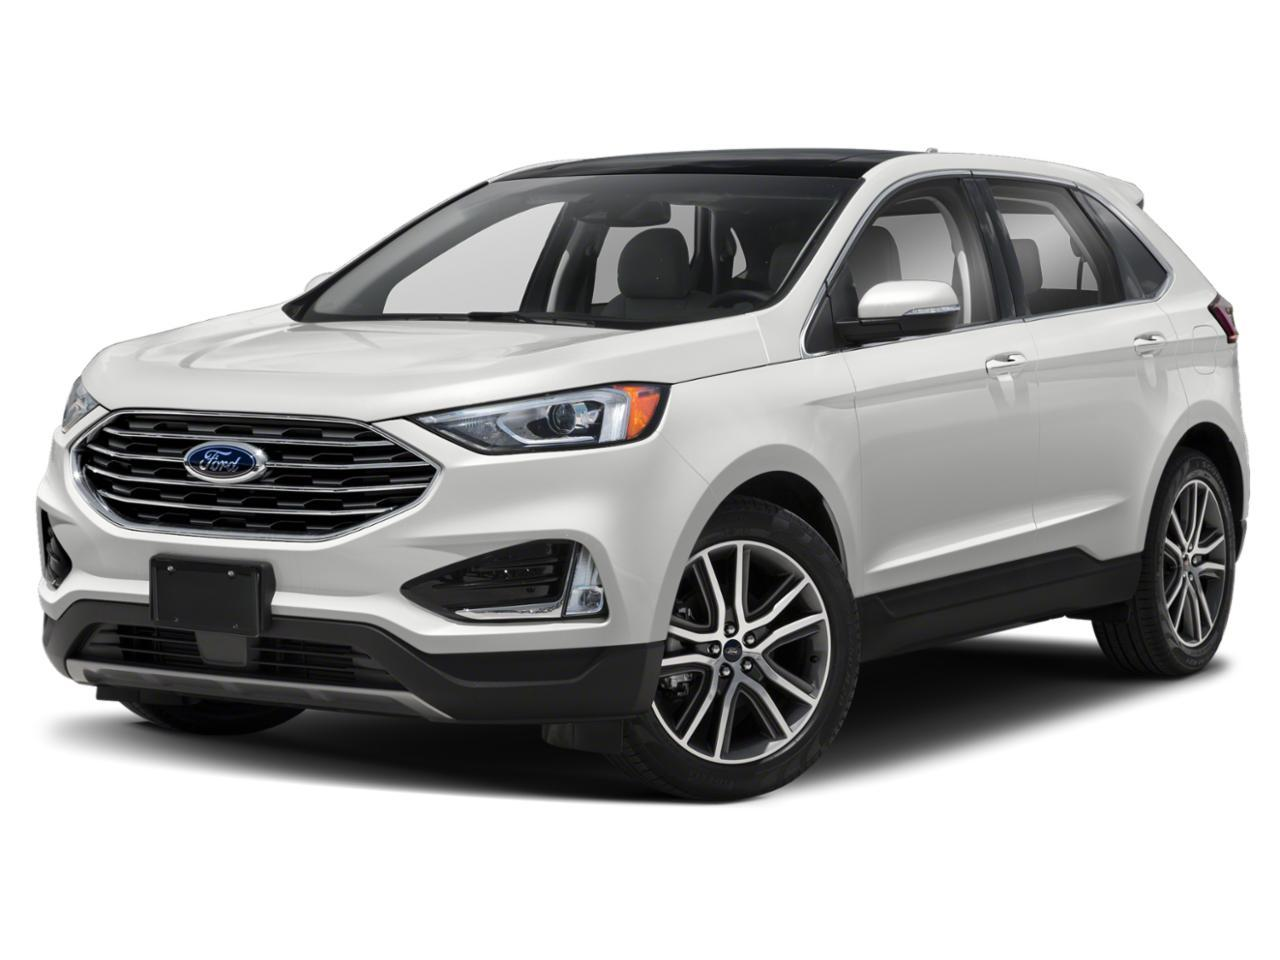 2019 Ford Edge Vehicle Photo in Bowie, MD 20716